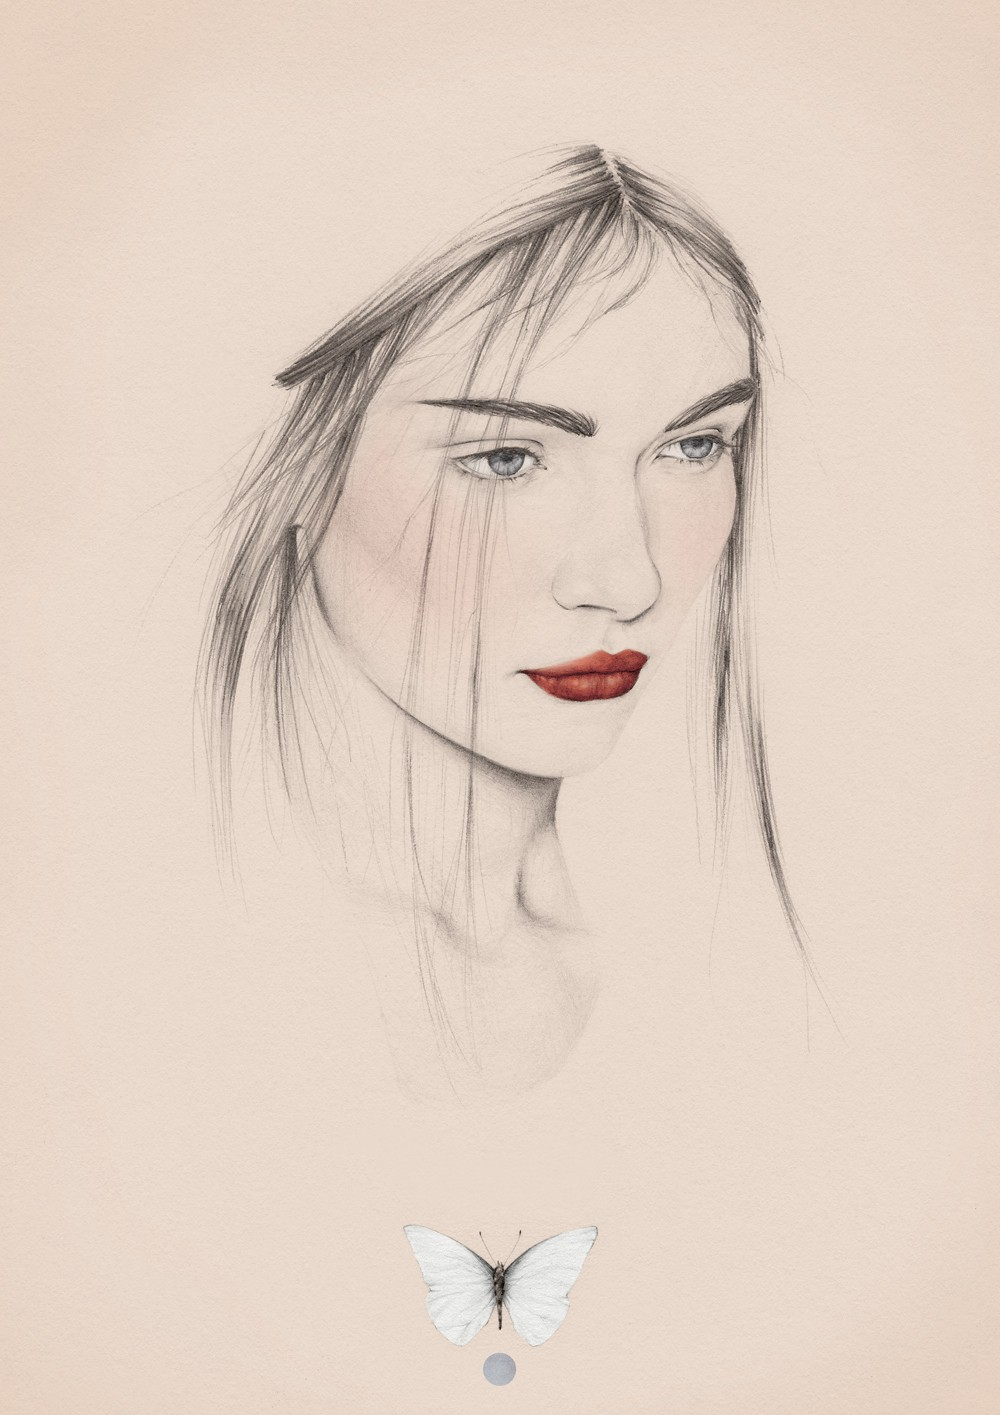 Drawn women australian Drawing Illustrator photoshop: pencil digital